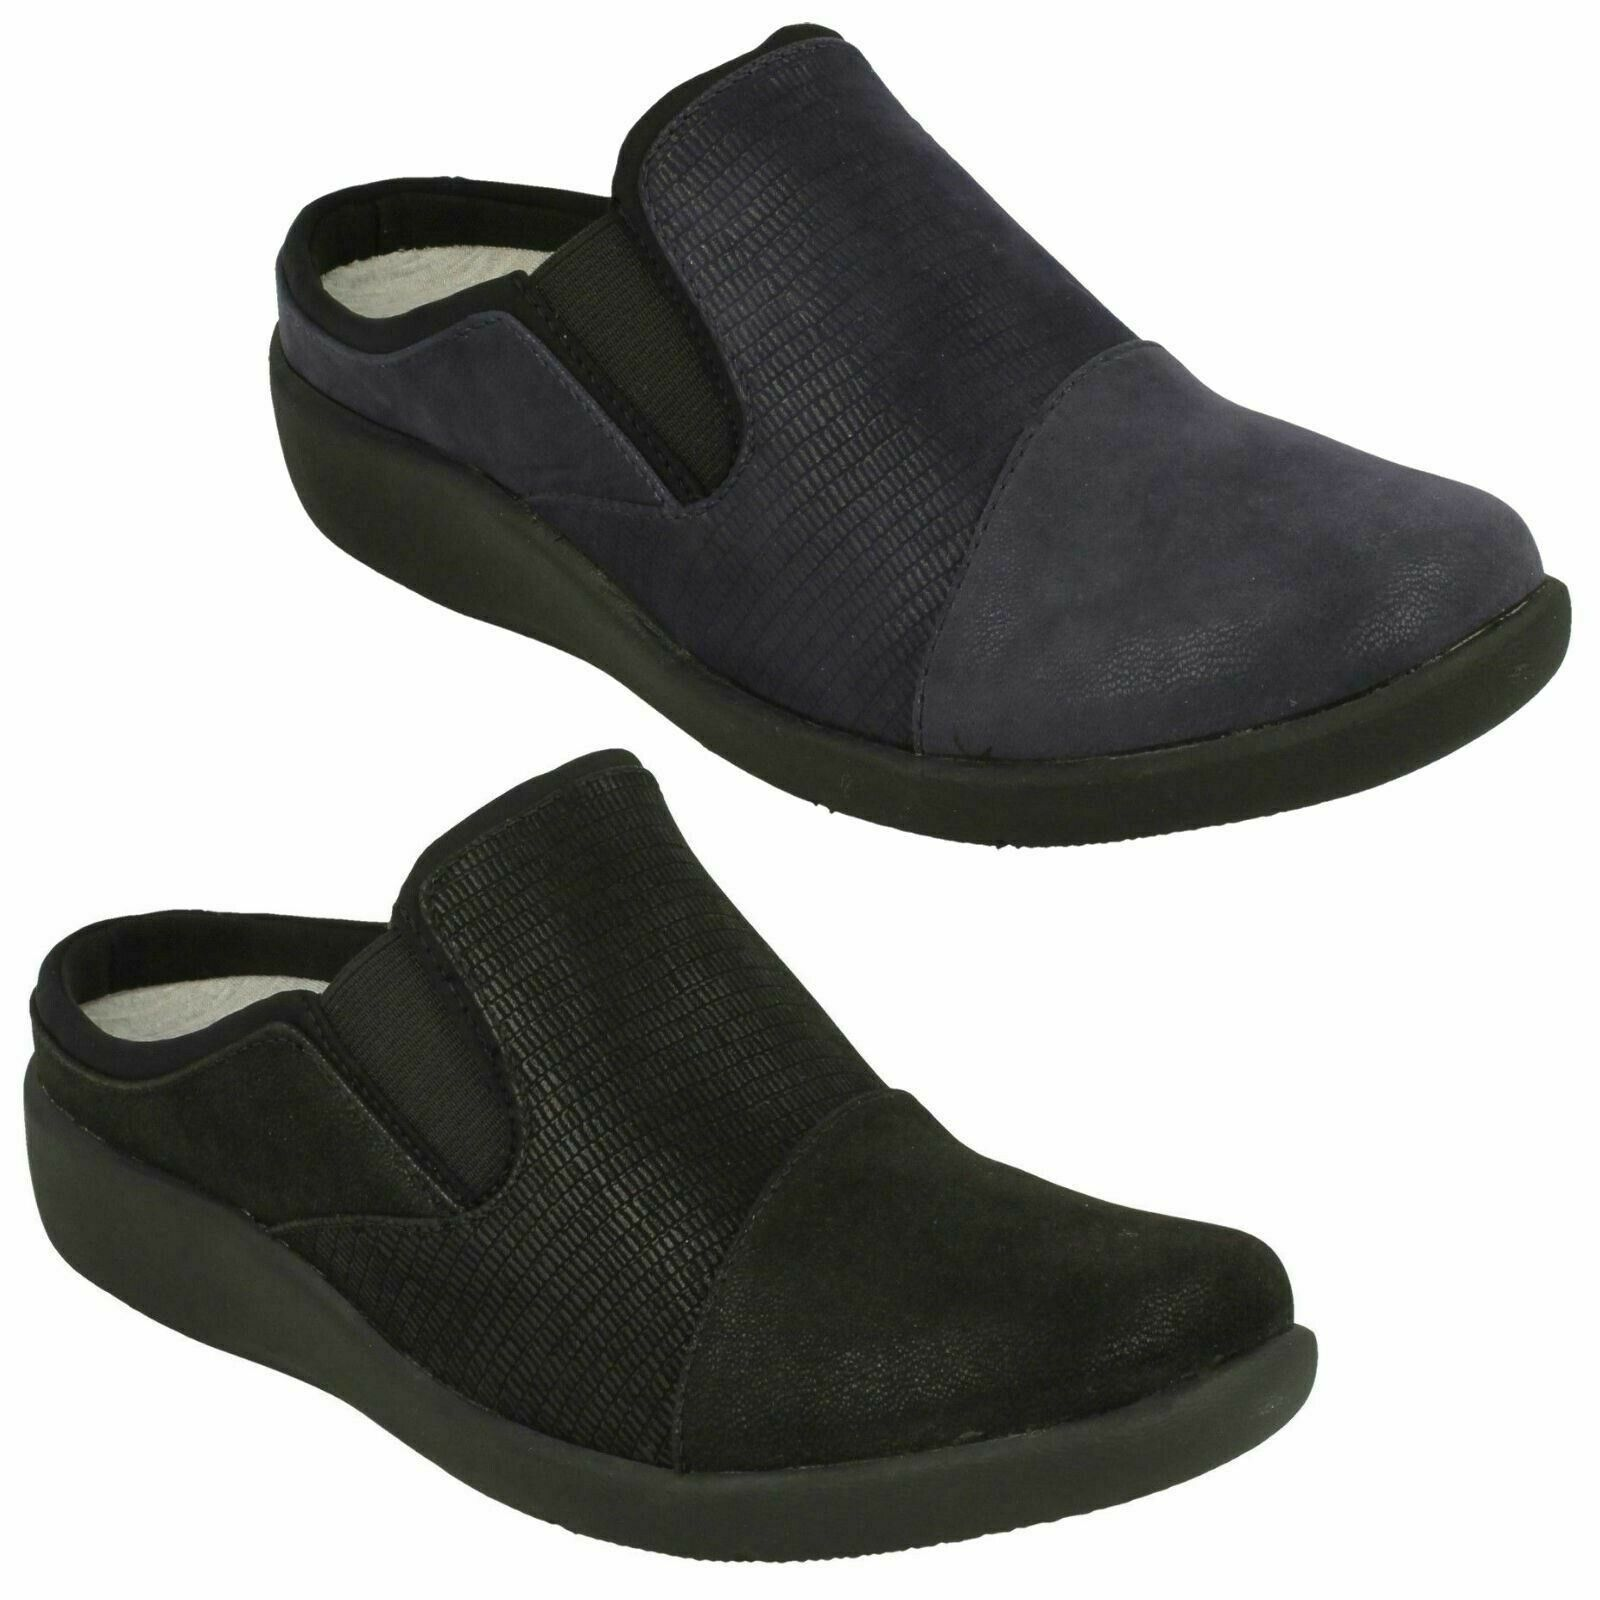 SILLIAN FREE LADIES Clerchen CLOUDSTEPPERS SLIP ON FLAT CASUAL MULES schuhe Größe